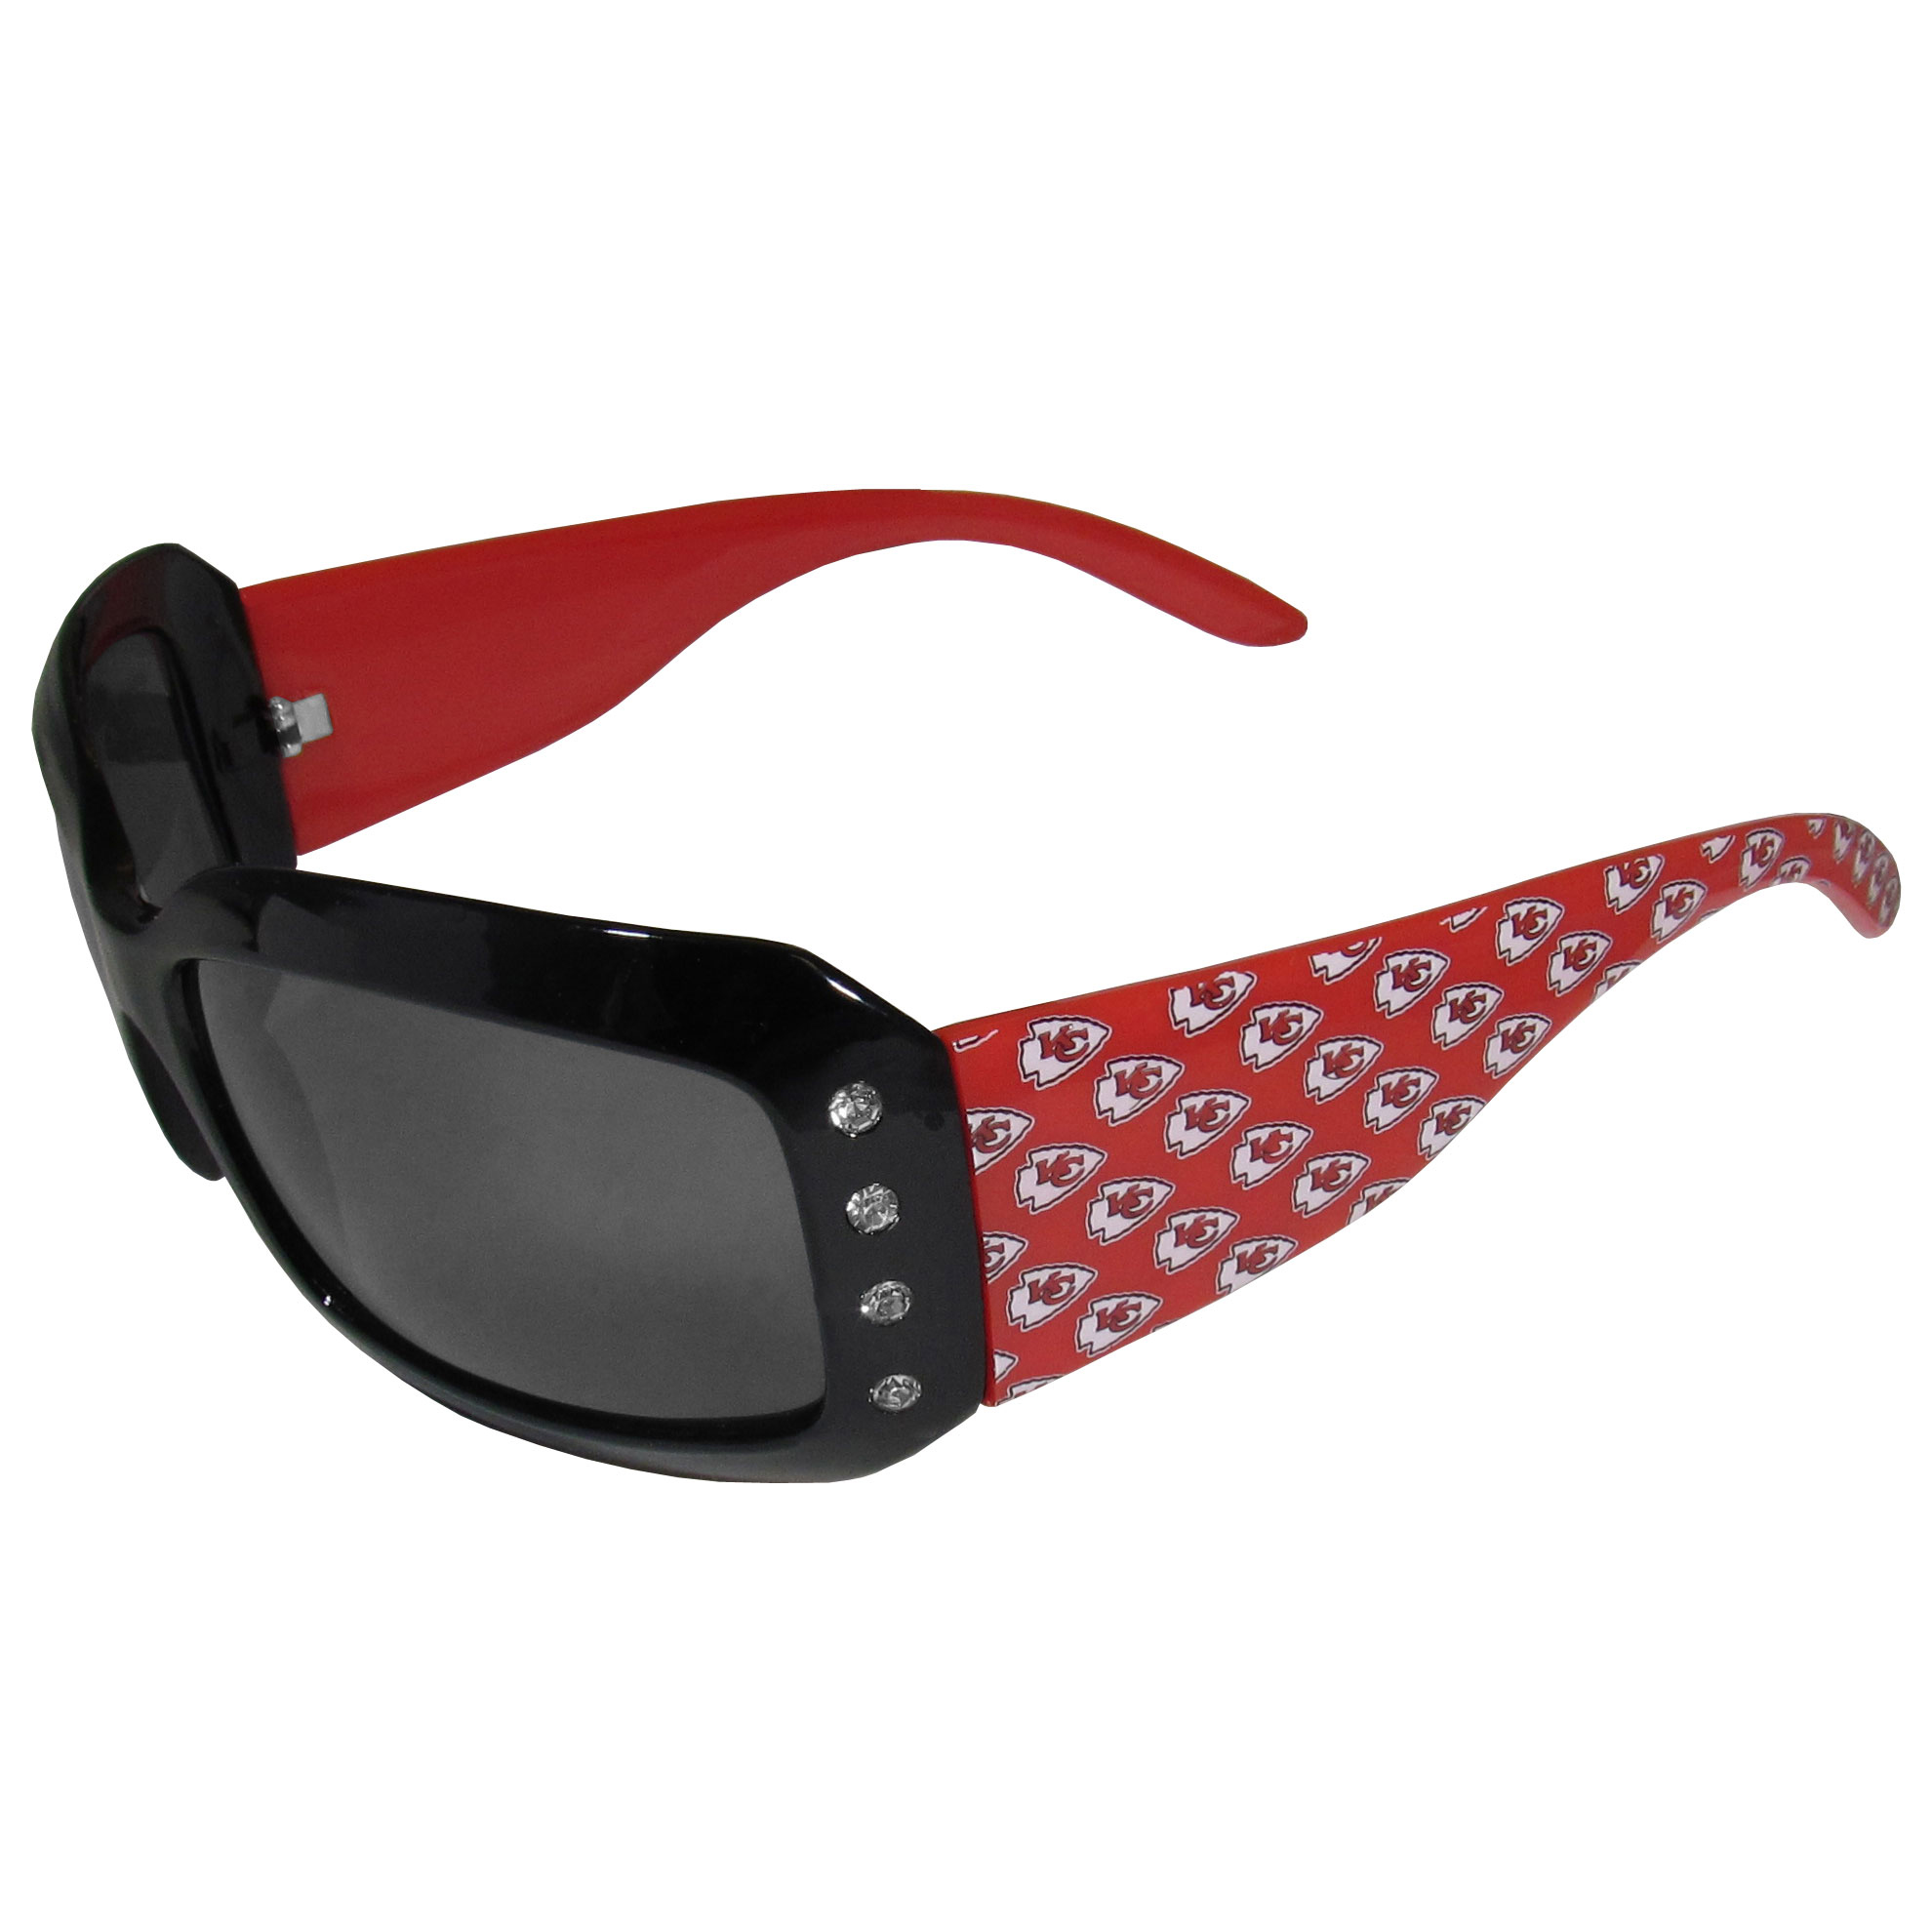 Kansas City Chiefs Designer Women's Sunglasses - Our designer women's sunglasses have a repeating Kansas City Chiefs logo design on the team colored arms and rhinestone accents. 100% UVA/UVB protection.